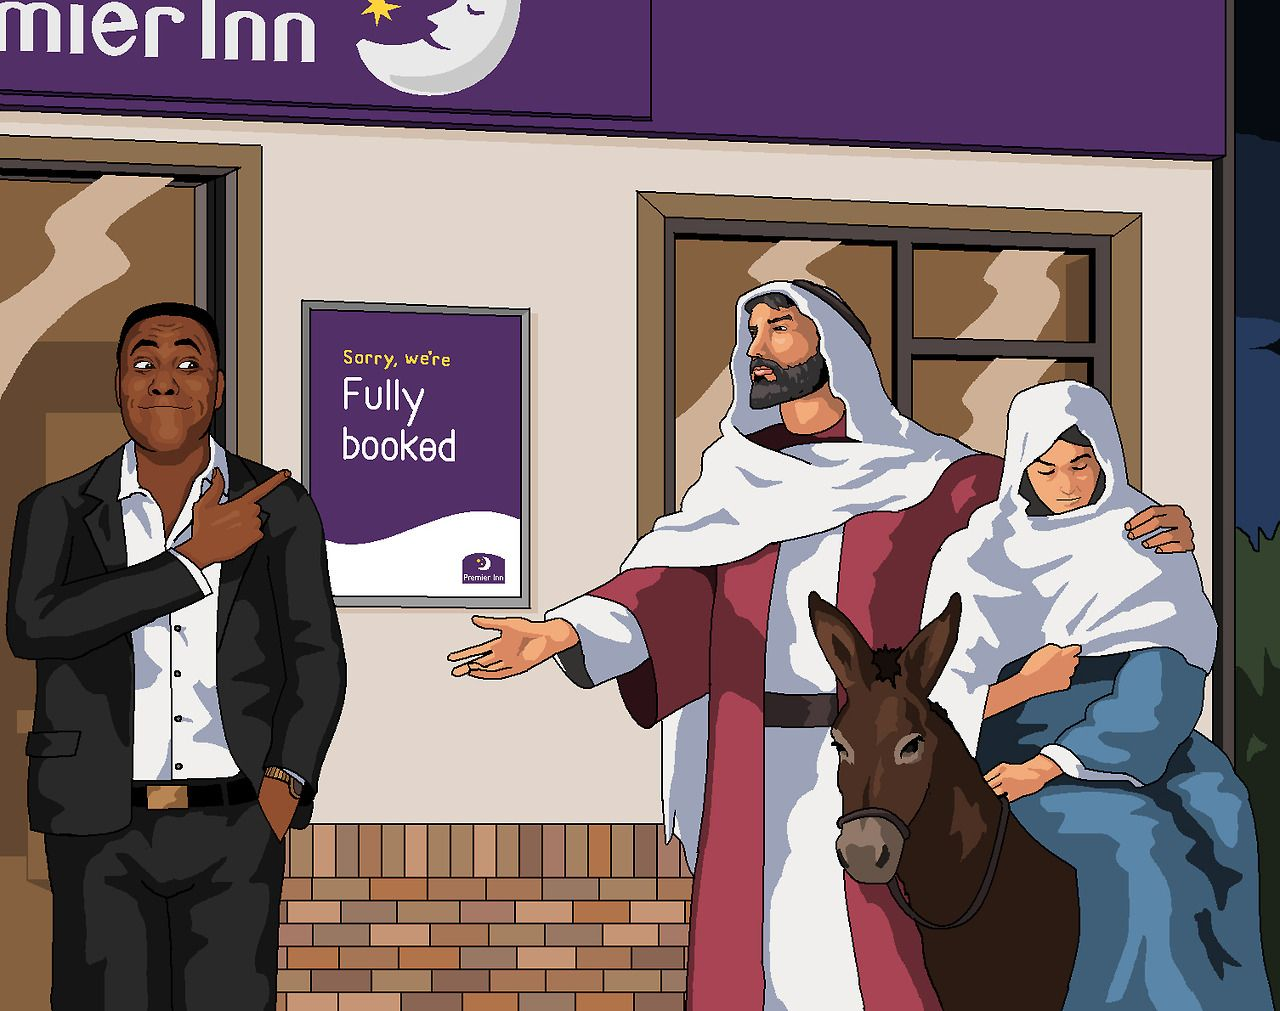 That S My Xmas Cards For This Year Sorted Then Mary Amp Joseph Being Turned Away From A Premier Inn By Lenny He Book Cheap Hotels Premier Inn Cheap Hotels